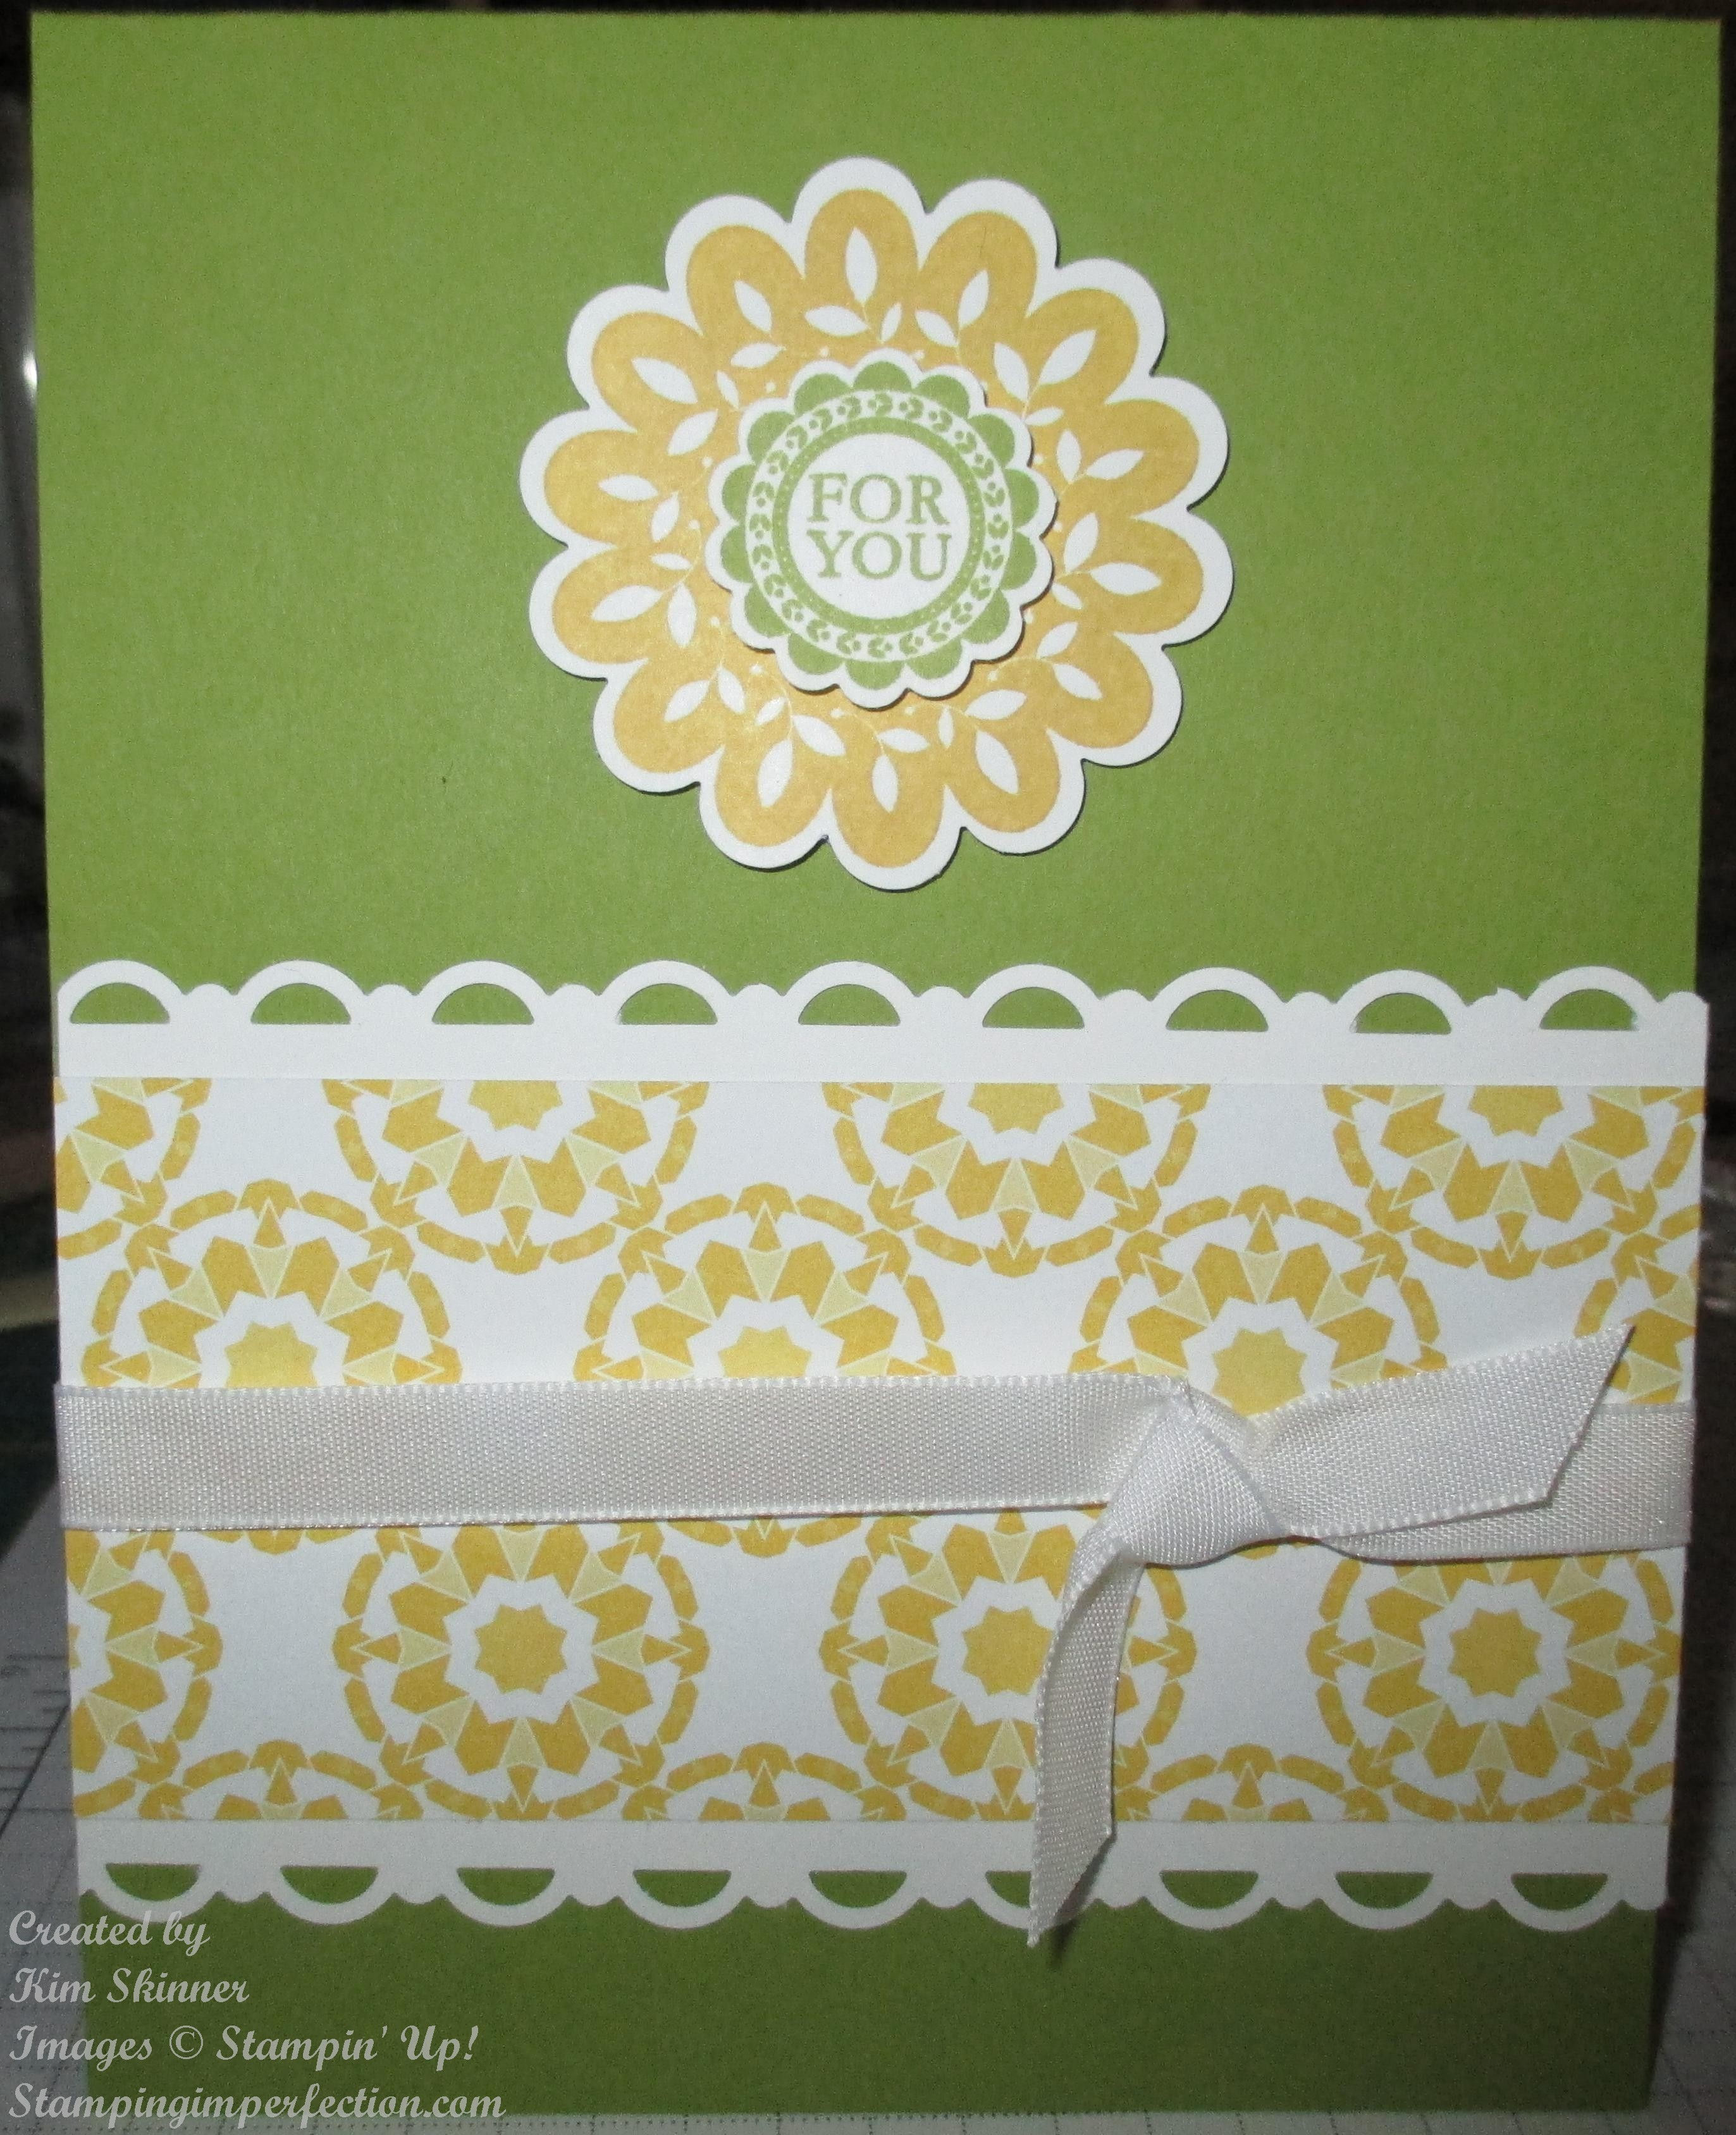 3 Great Punches from Stampin' Up!